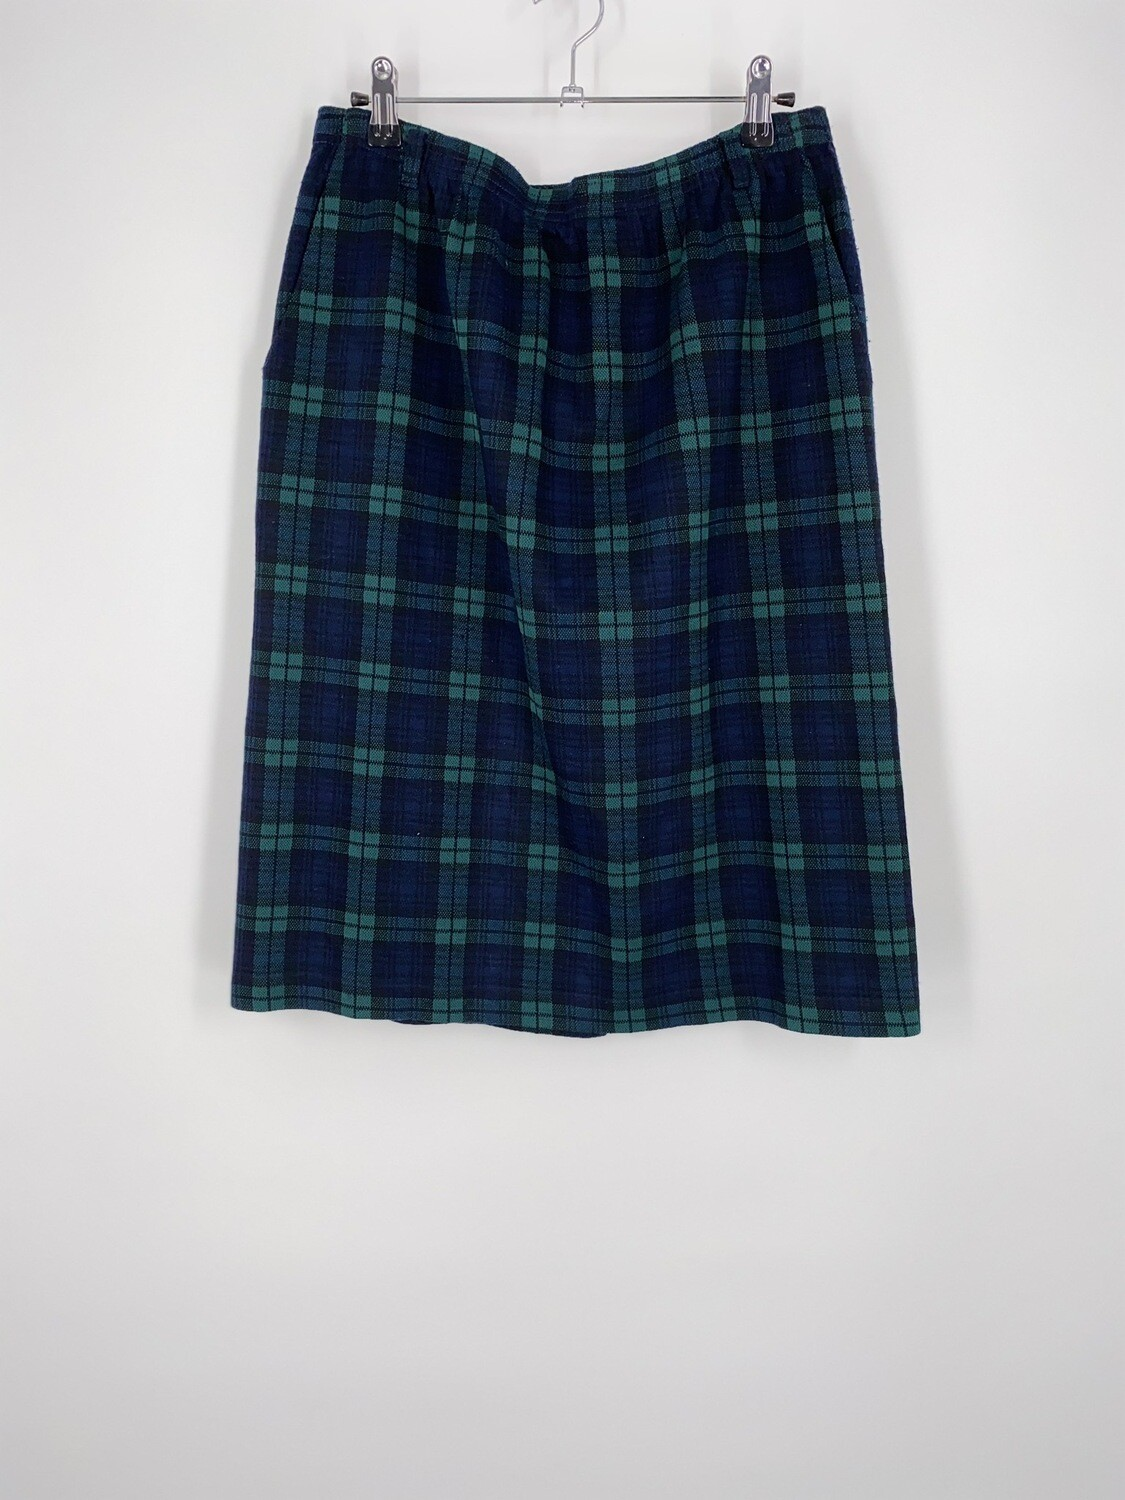 Alfred Dunner Green Plaid Skirt Size L